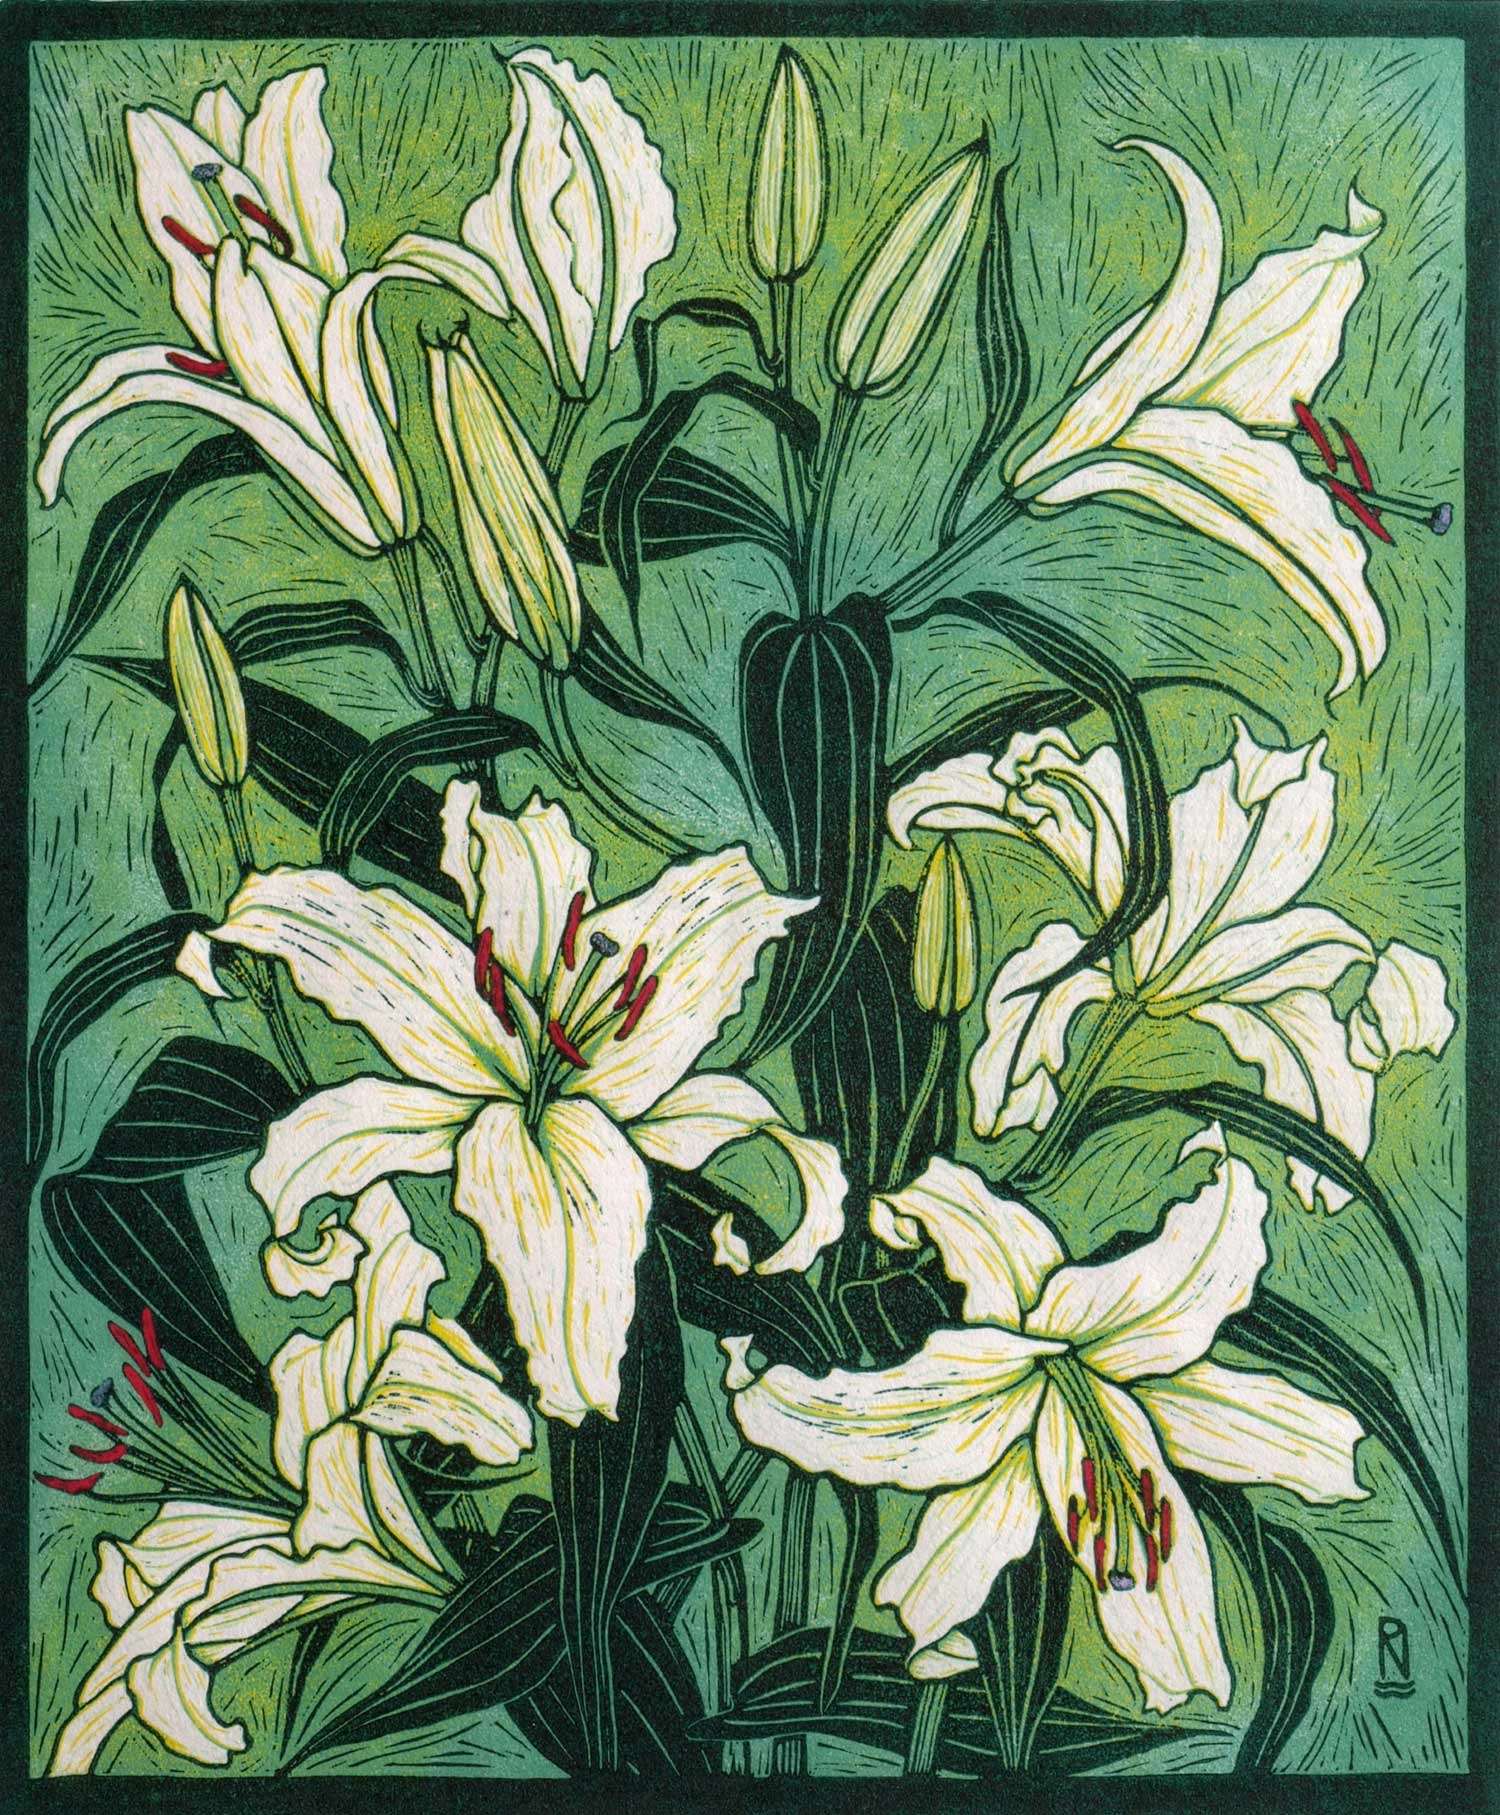 ORIENTAL LILY  53.5 x 44.5 CM EDITION OF 50  REDUCTION LINOCUT, pigment print on Japanese paper  $1,250